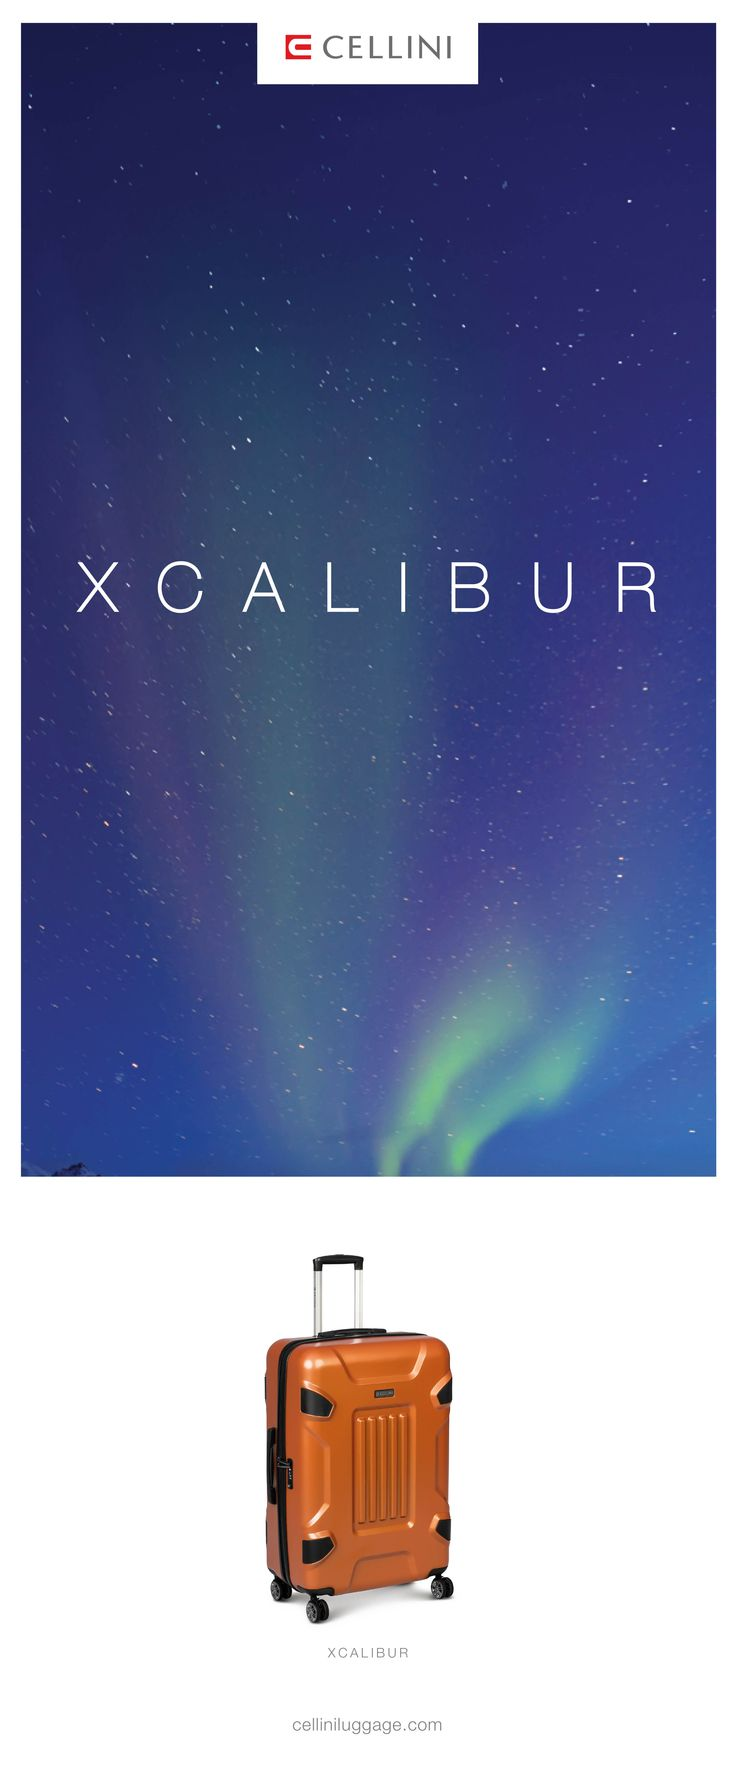 Cellini Xcalibur